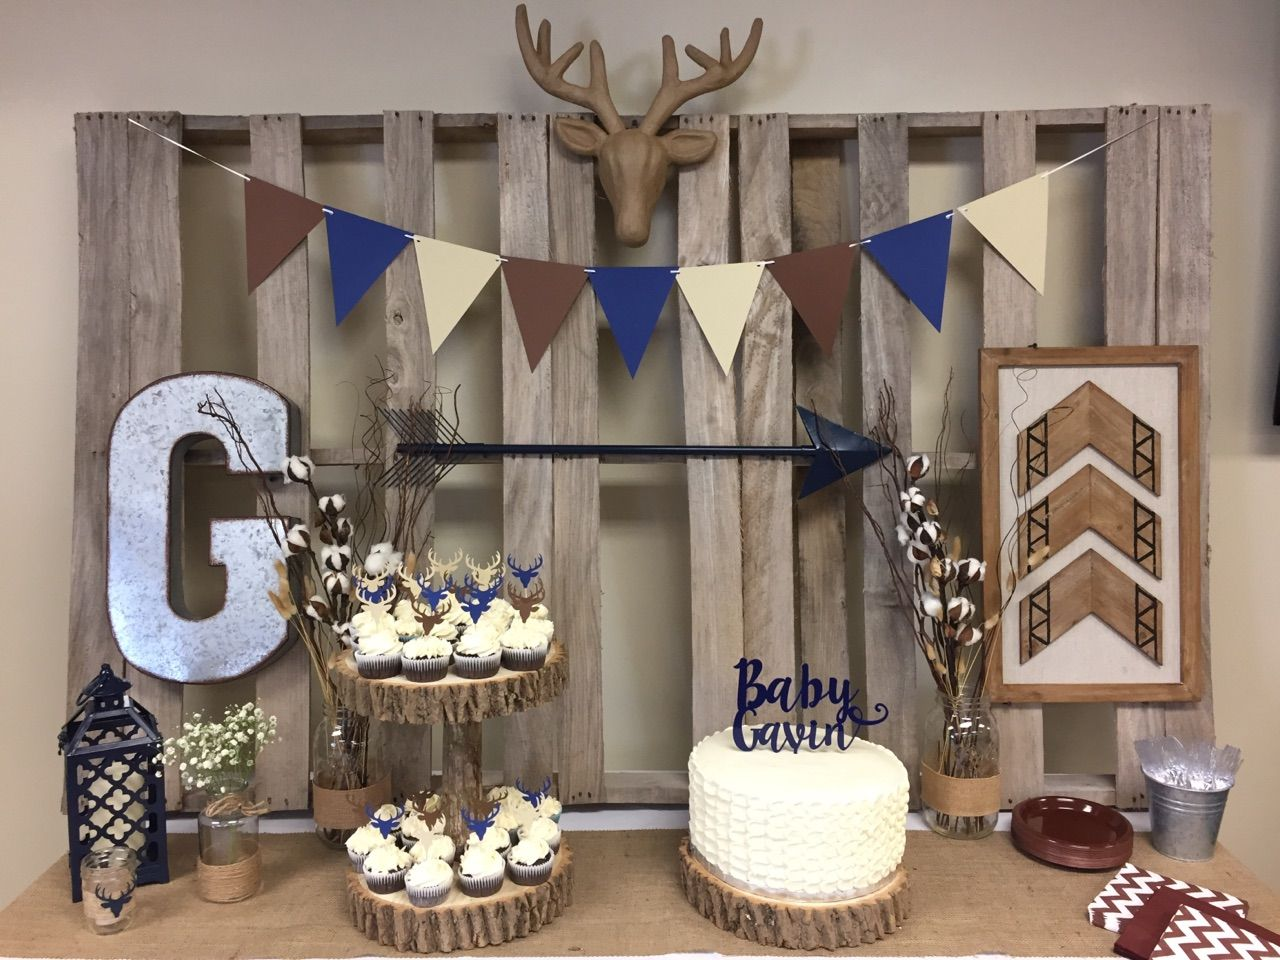 Rustic Deer Baby Shower Decor Baby 2 Boy Baby Shower Themes Deer Baby Showers Hunting Baby Showers